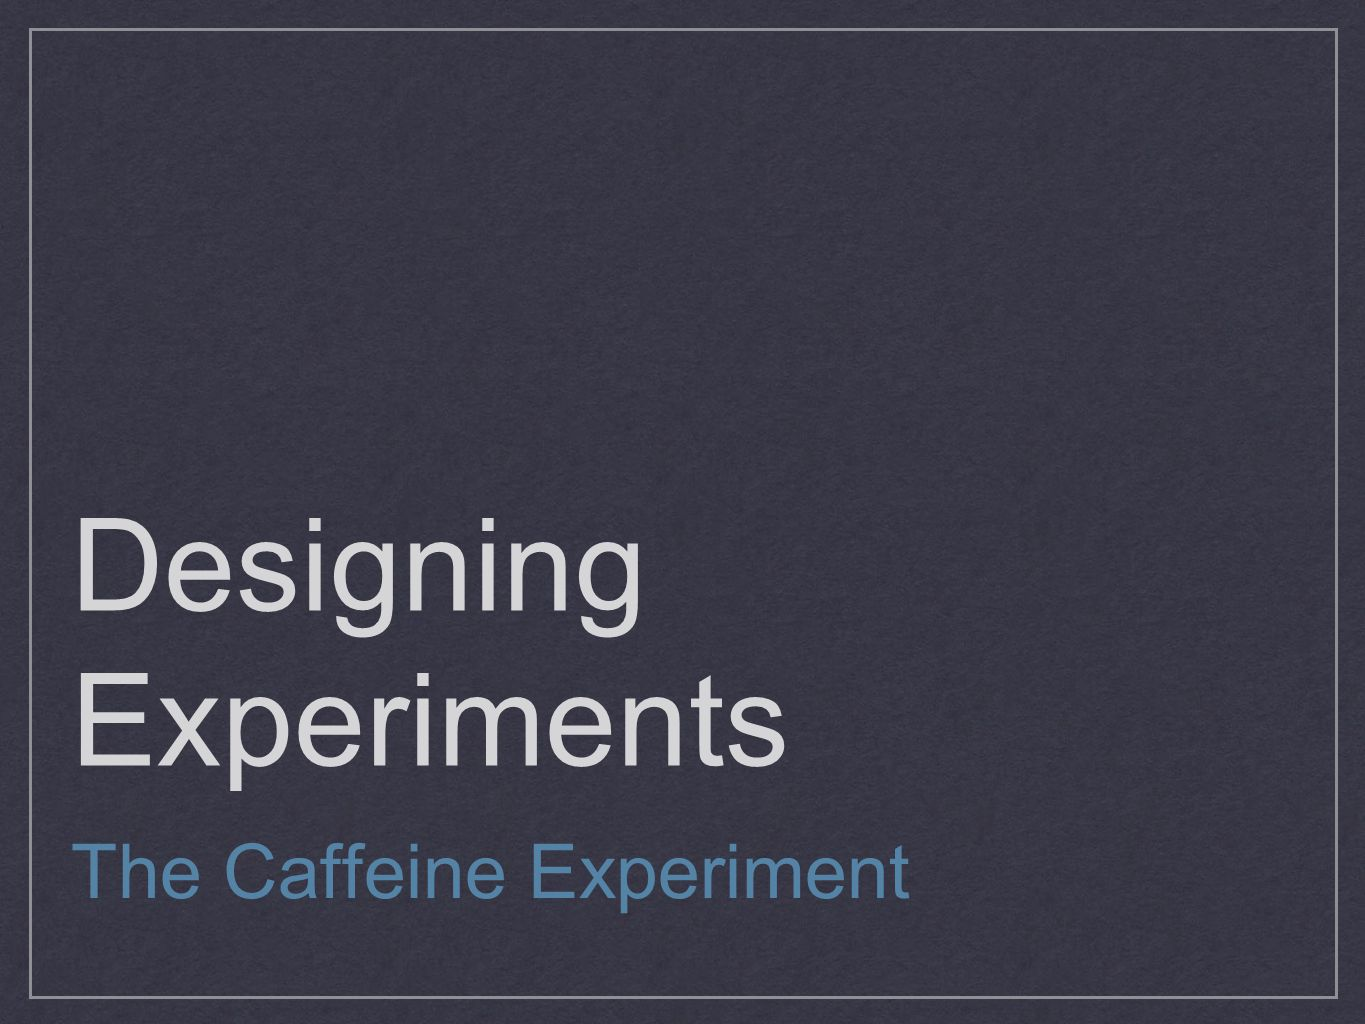 Designing Experiments The Caffeine Experiment